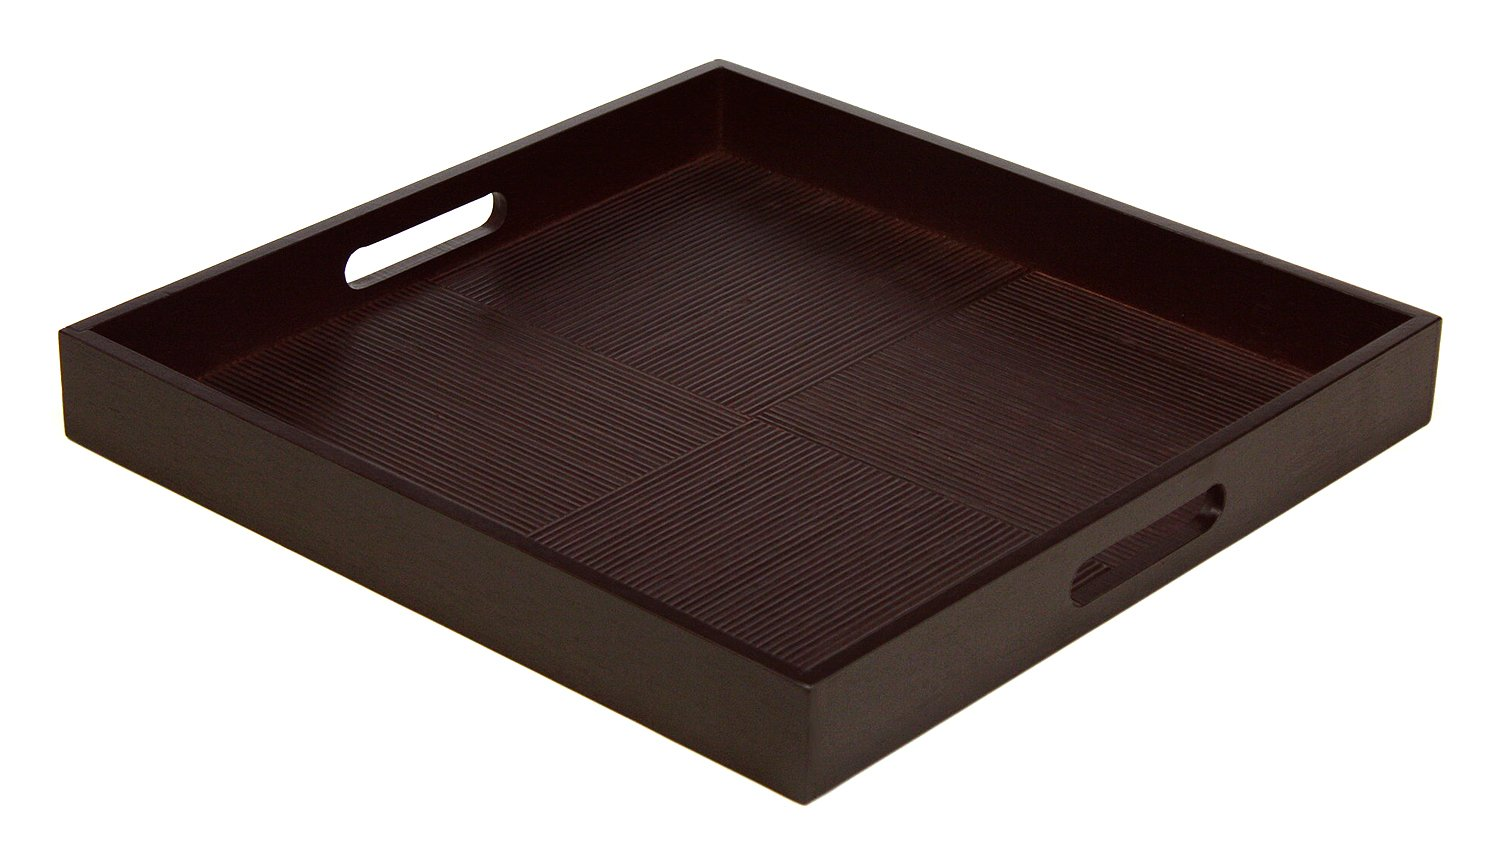 Simply Bamboo Espresso Brown Bamboo Wood Square Serving Tray, 16'' L x 16'' W